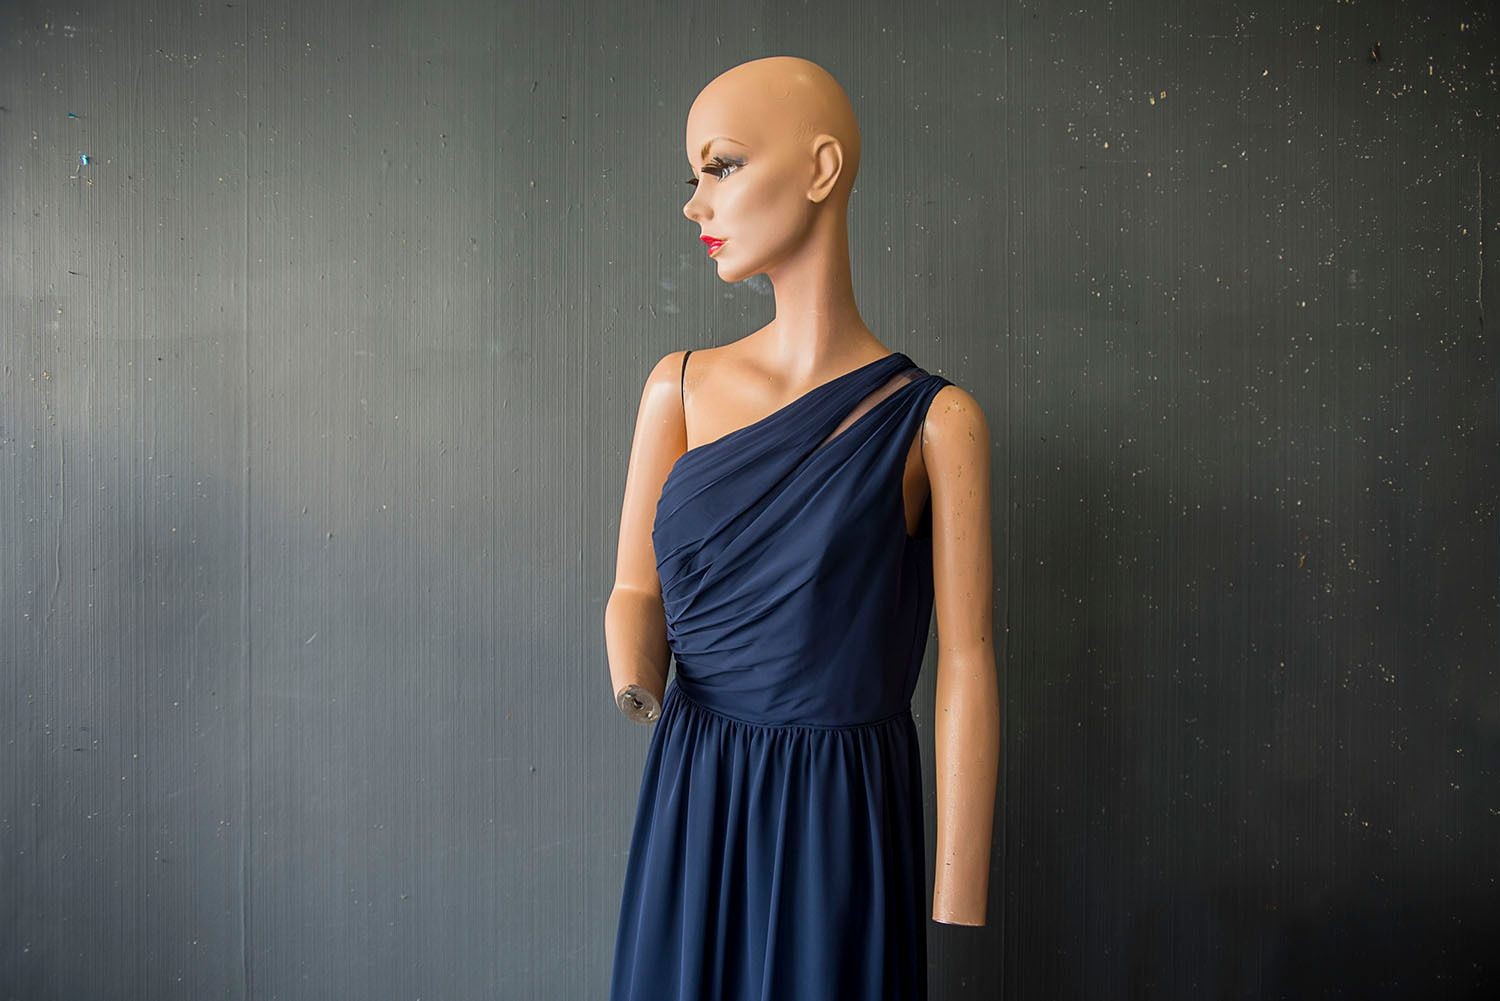 Female Mannequin without Hands or Hair